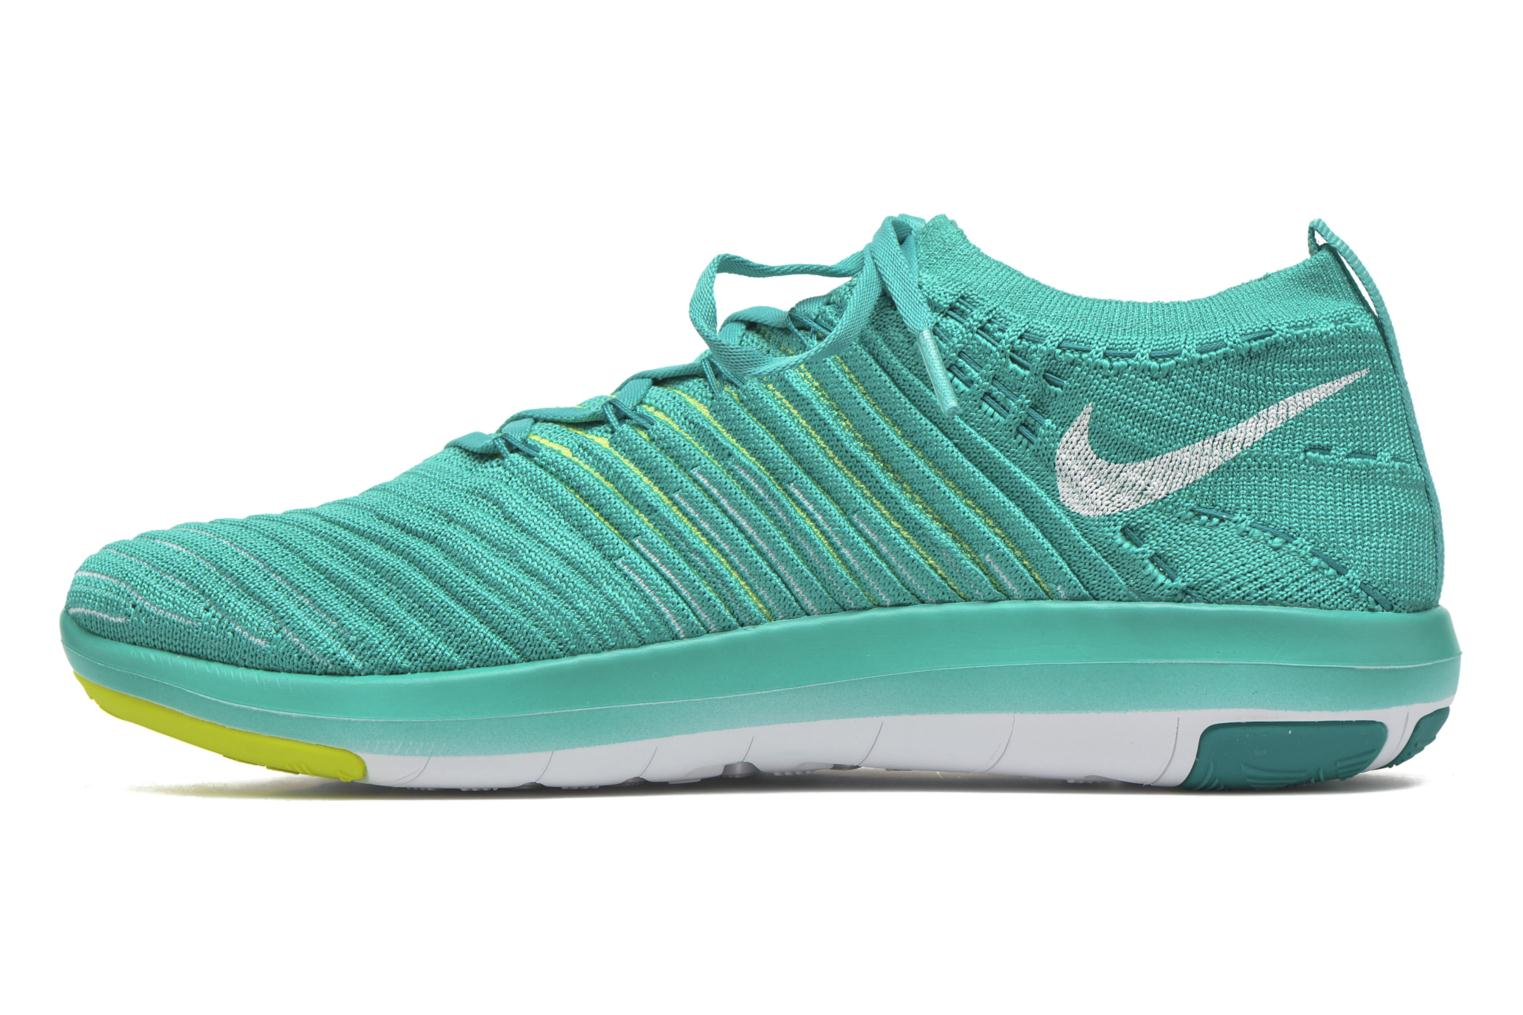 Nike Wm Nike Free Transform Flyknit Groen Footlocker Finish Online Te Koop Goedkope Koop Topkwaliteit Goedkope Koop Goedkope Kopen Goedkope Online Winkelen sIKWpNcQw